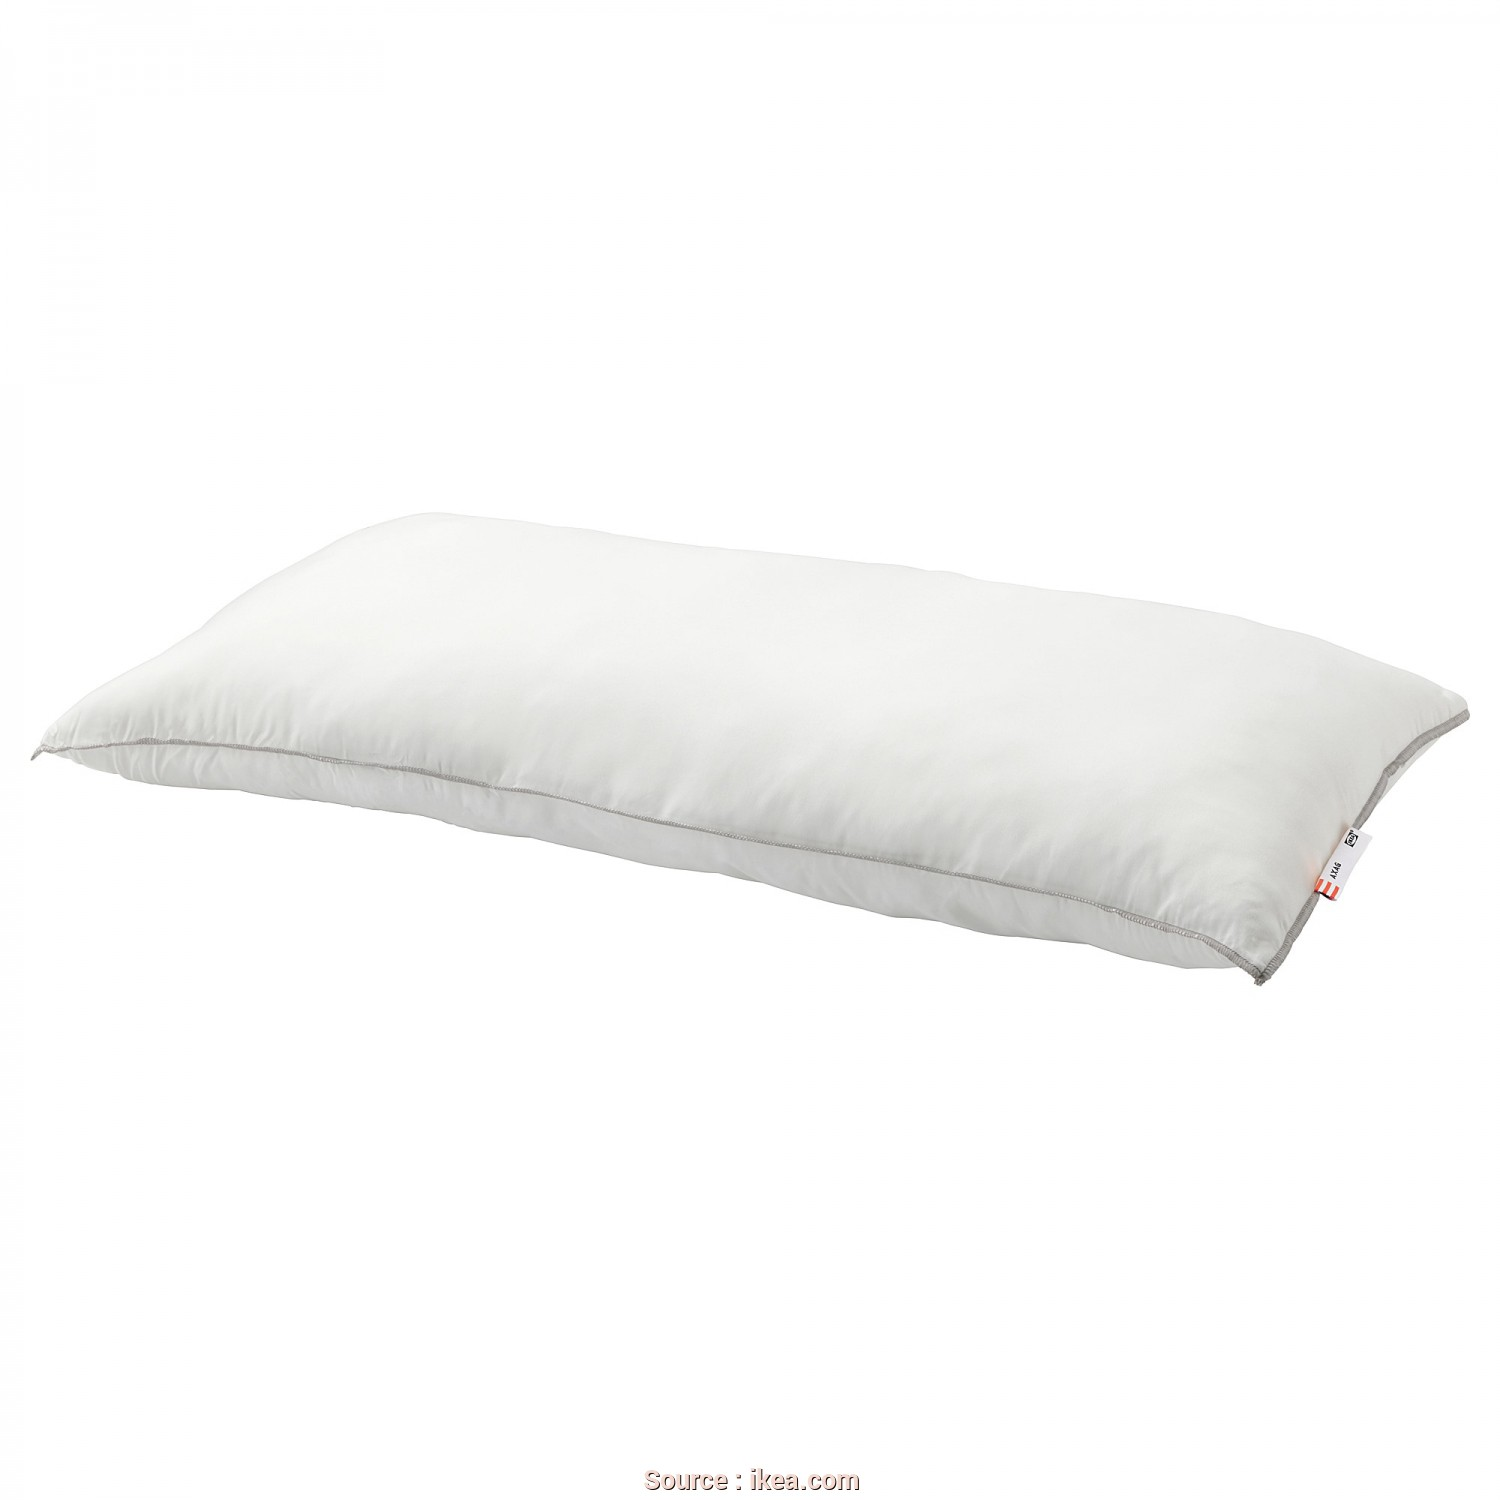 Ikea Cuscino Rolleka, Sbalorditivo IKEA AXAG Pillow, Firmer A Firm, Easy-Care Pillow In Brushed Microfibre With